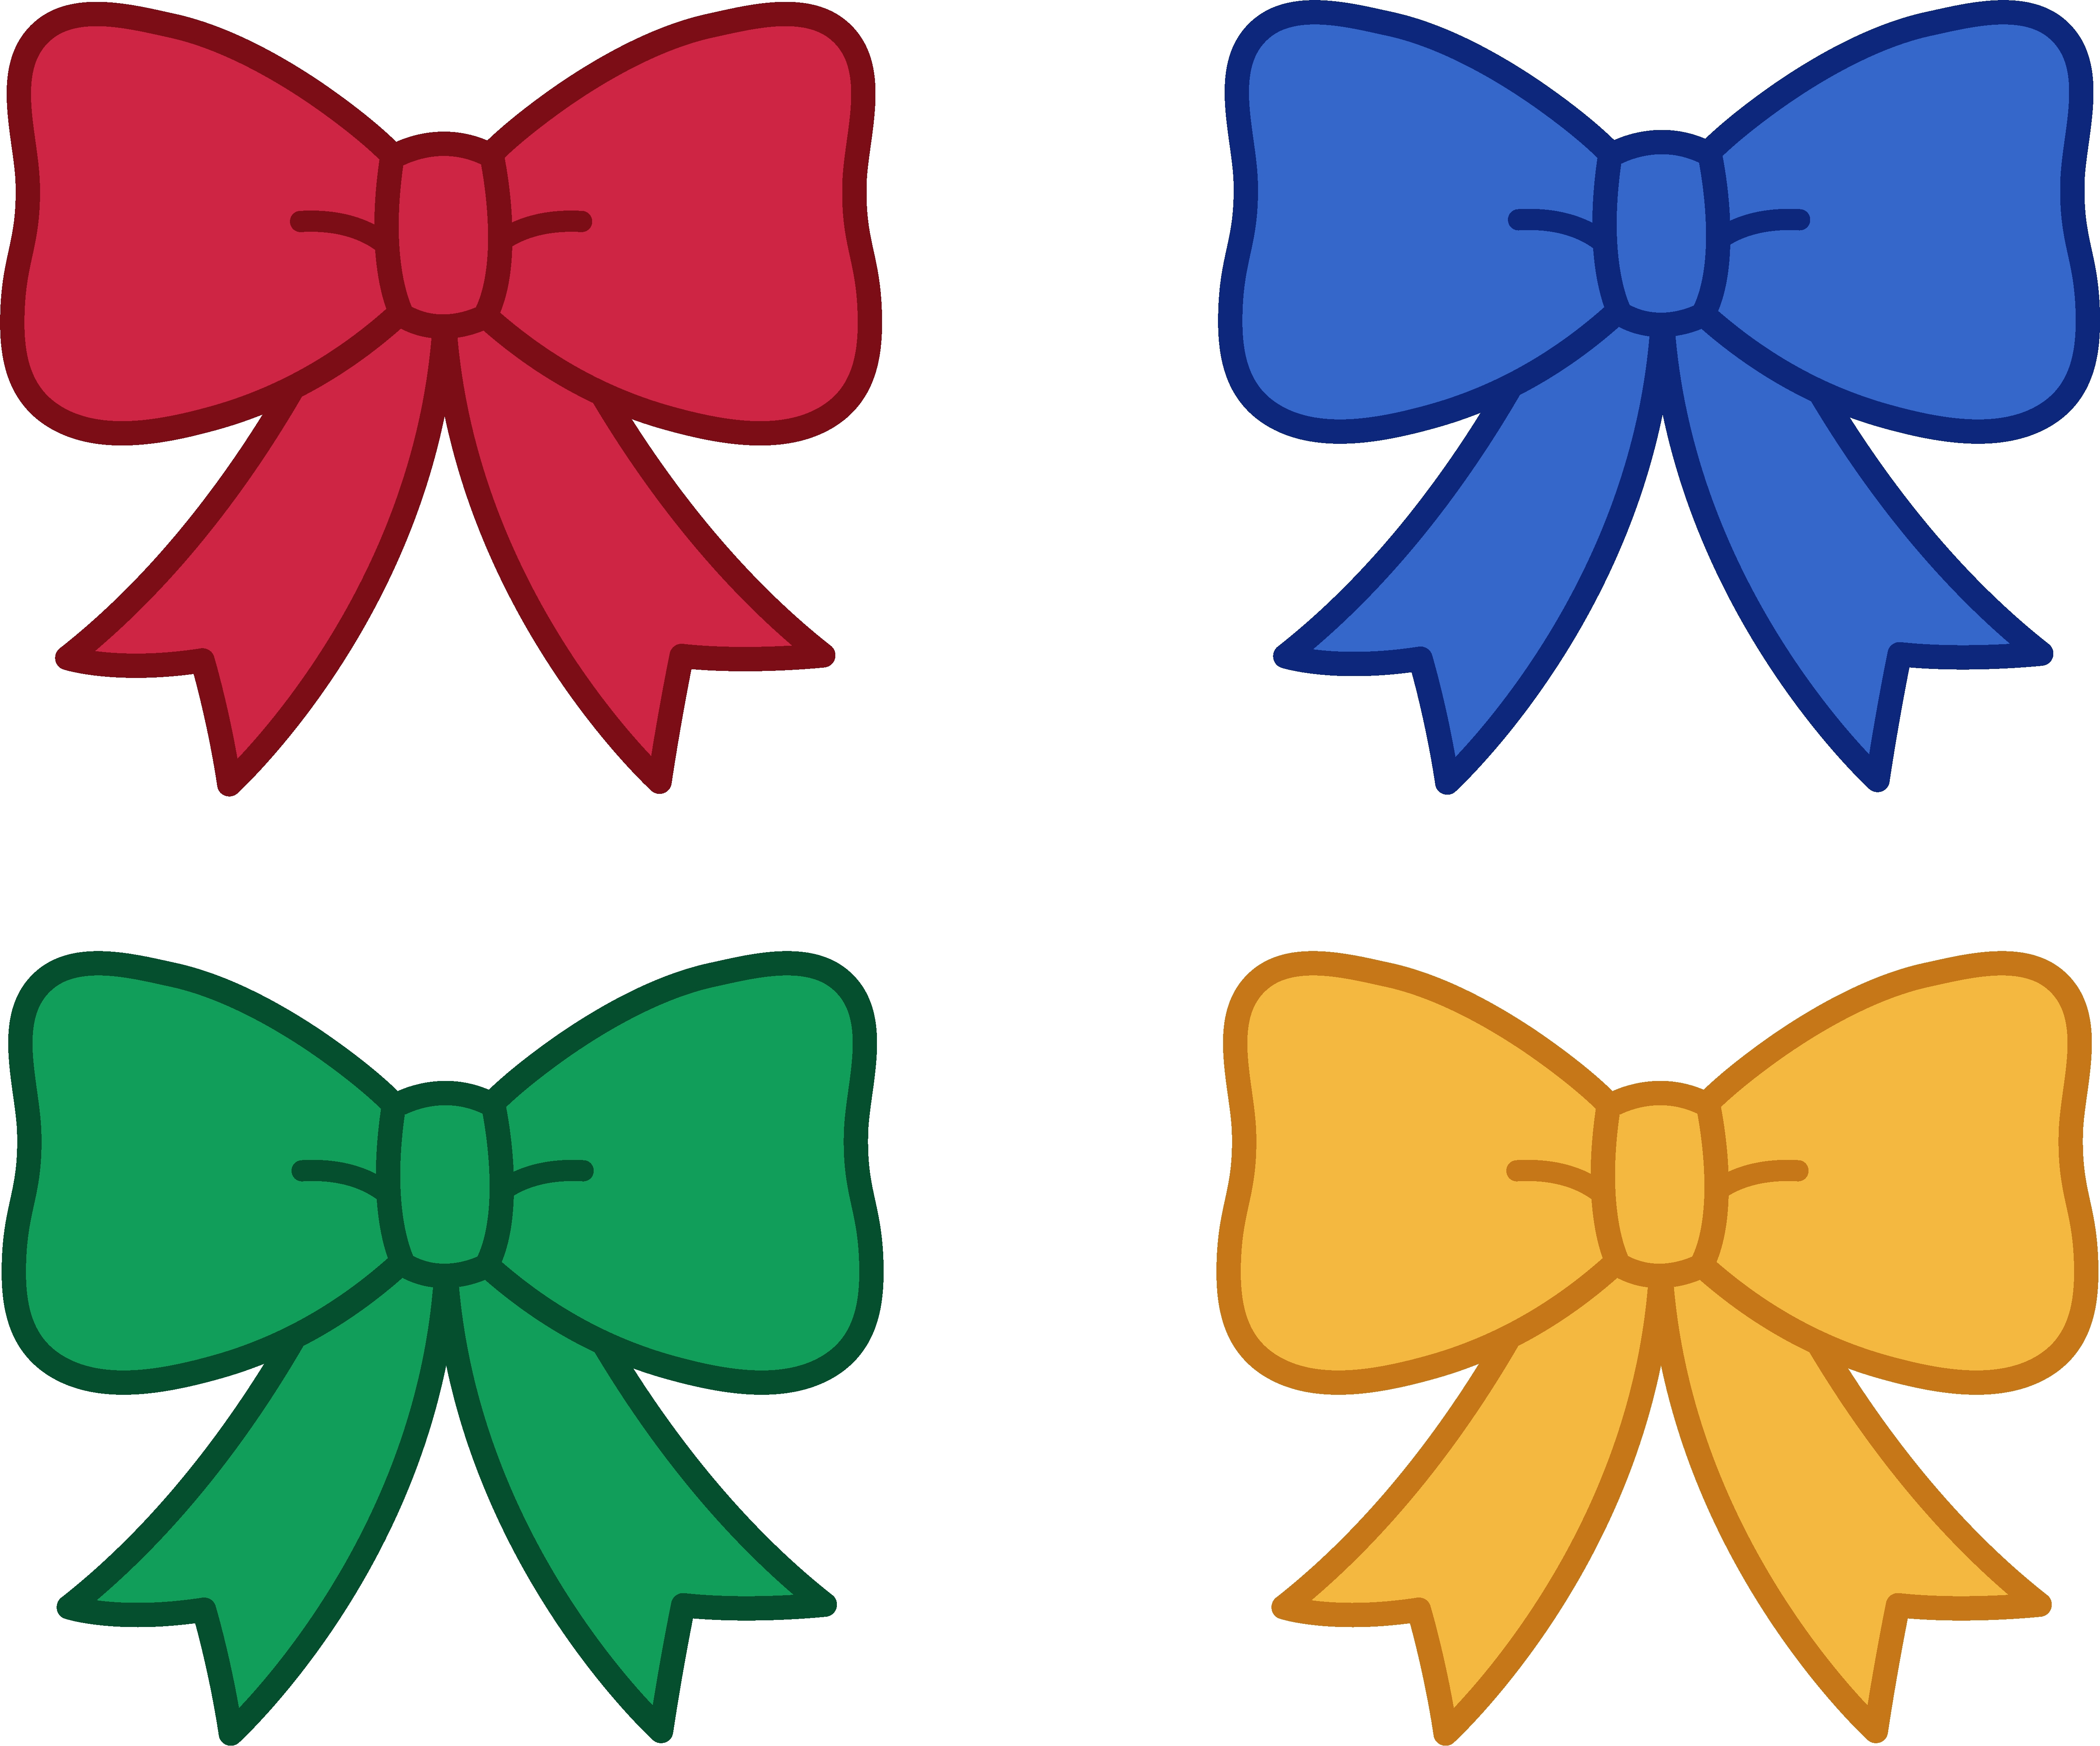 Awesome bow design digital. Bows clipart cute